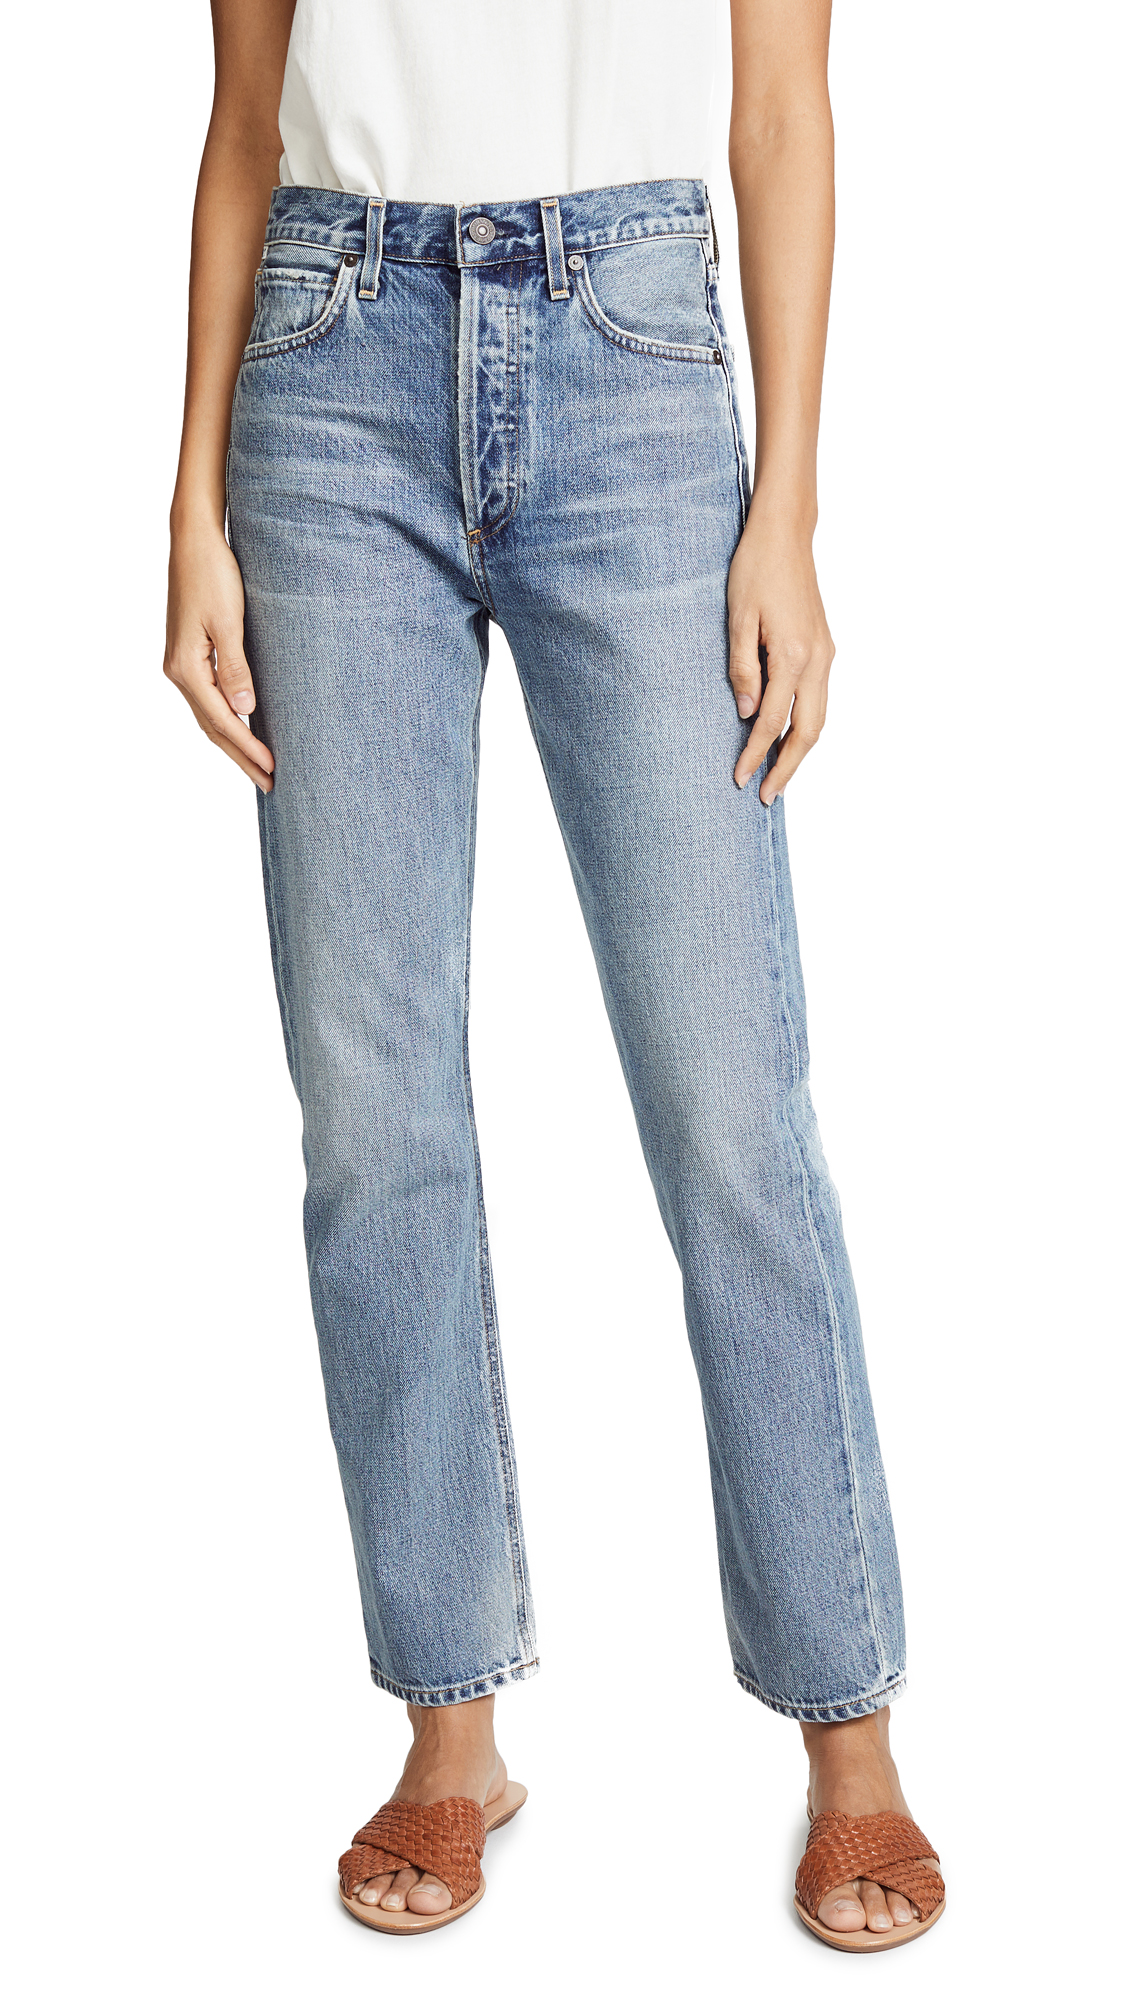 Citizens of Humanity Charlotte High Rise Straight Jeans - Wynwood